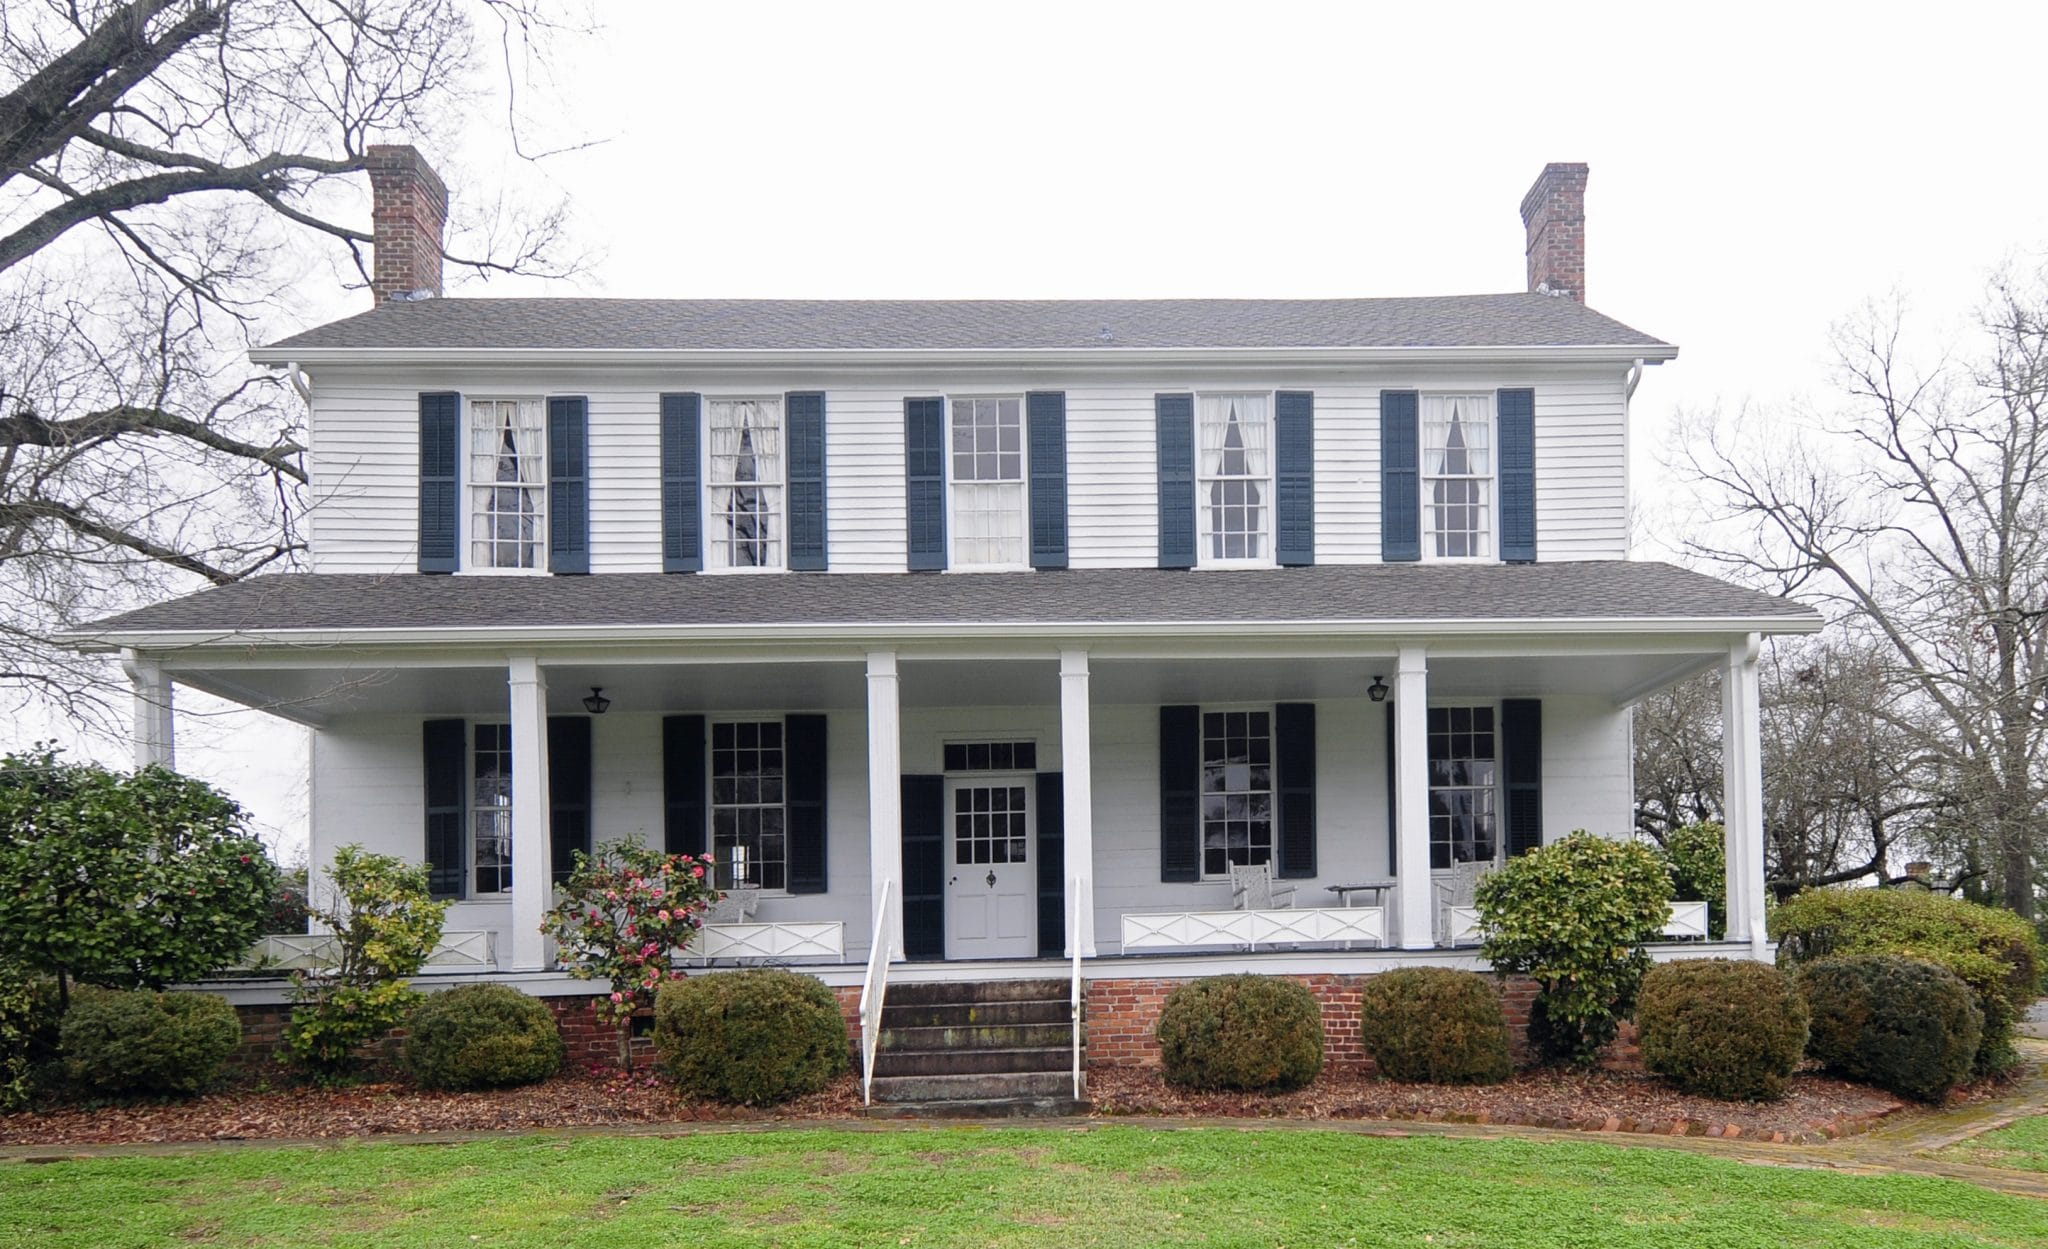 Laurens SC Heating and Air- James Dunklin House